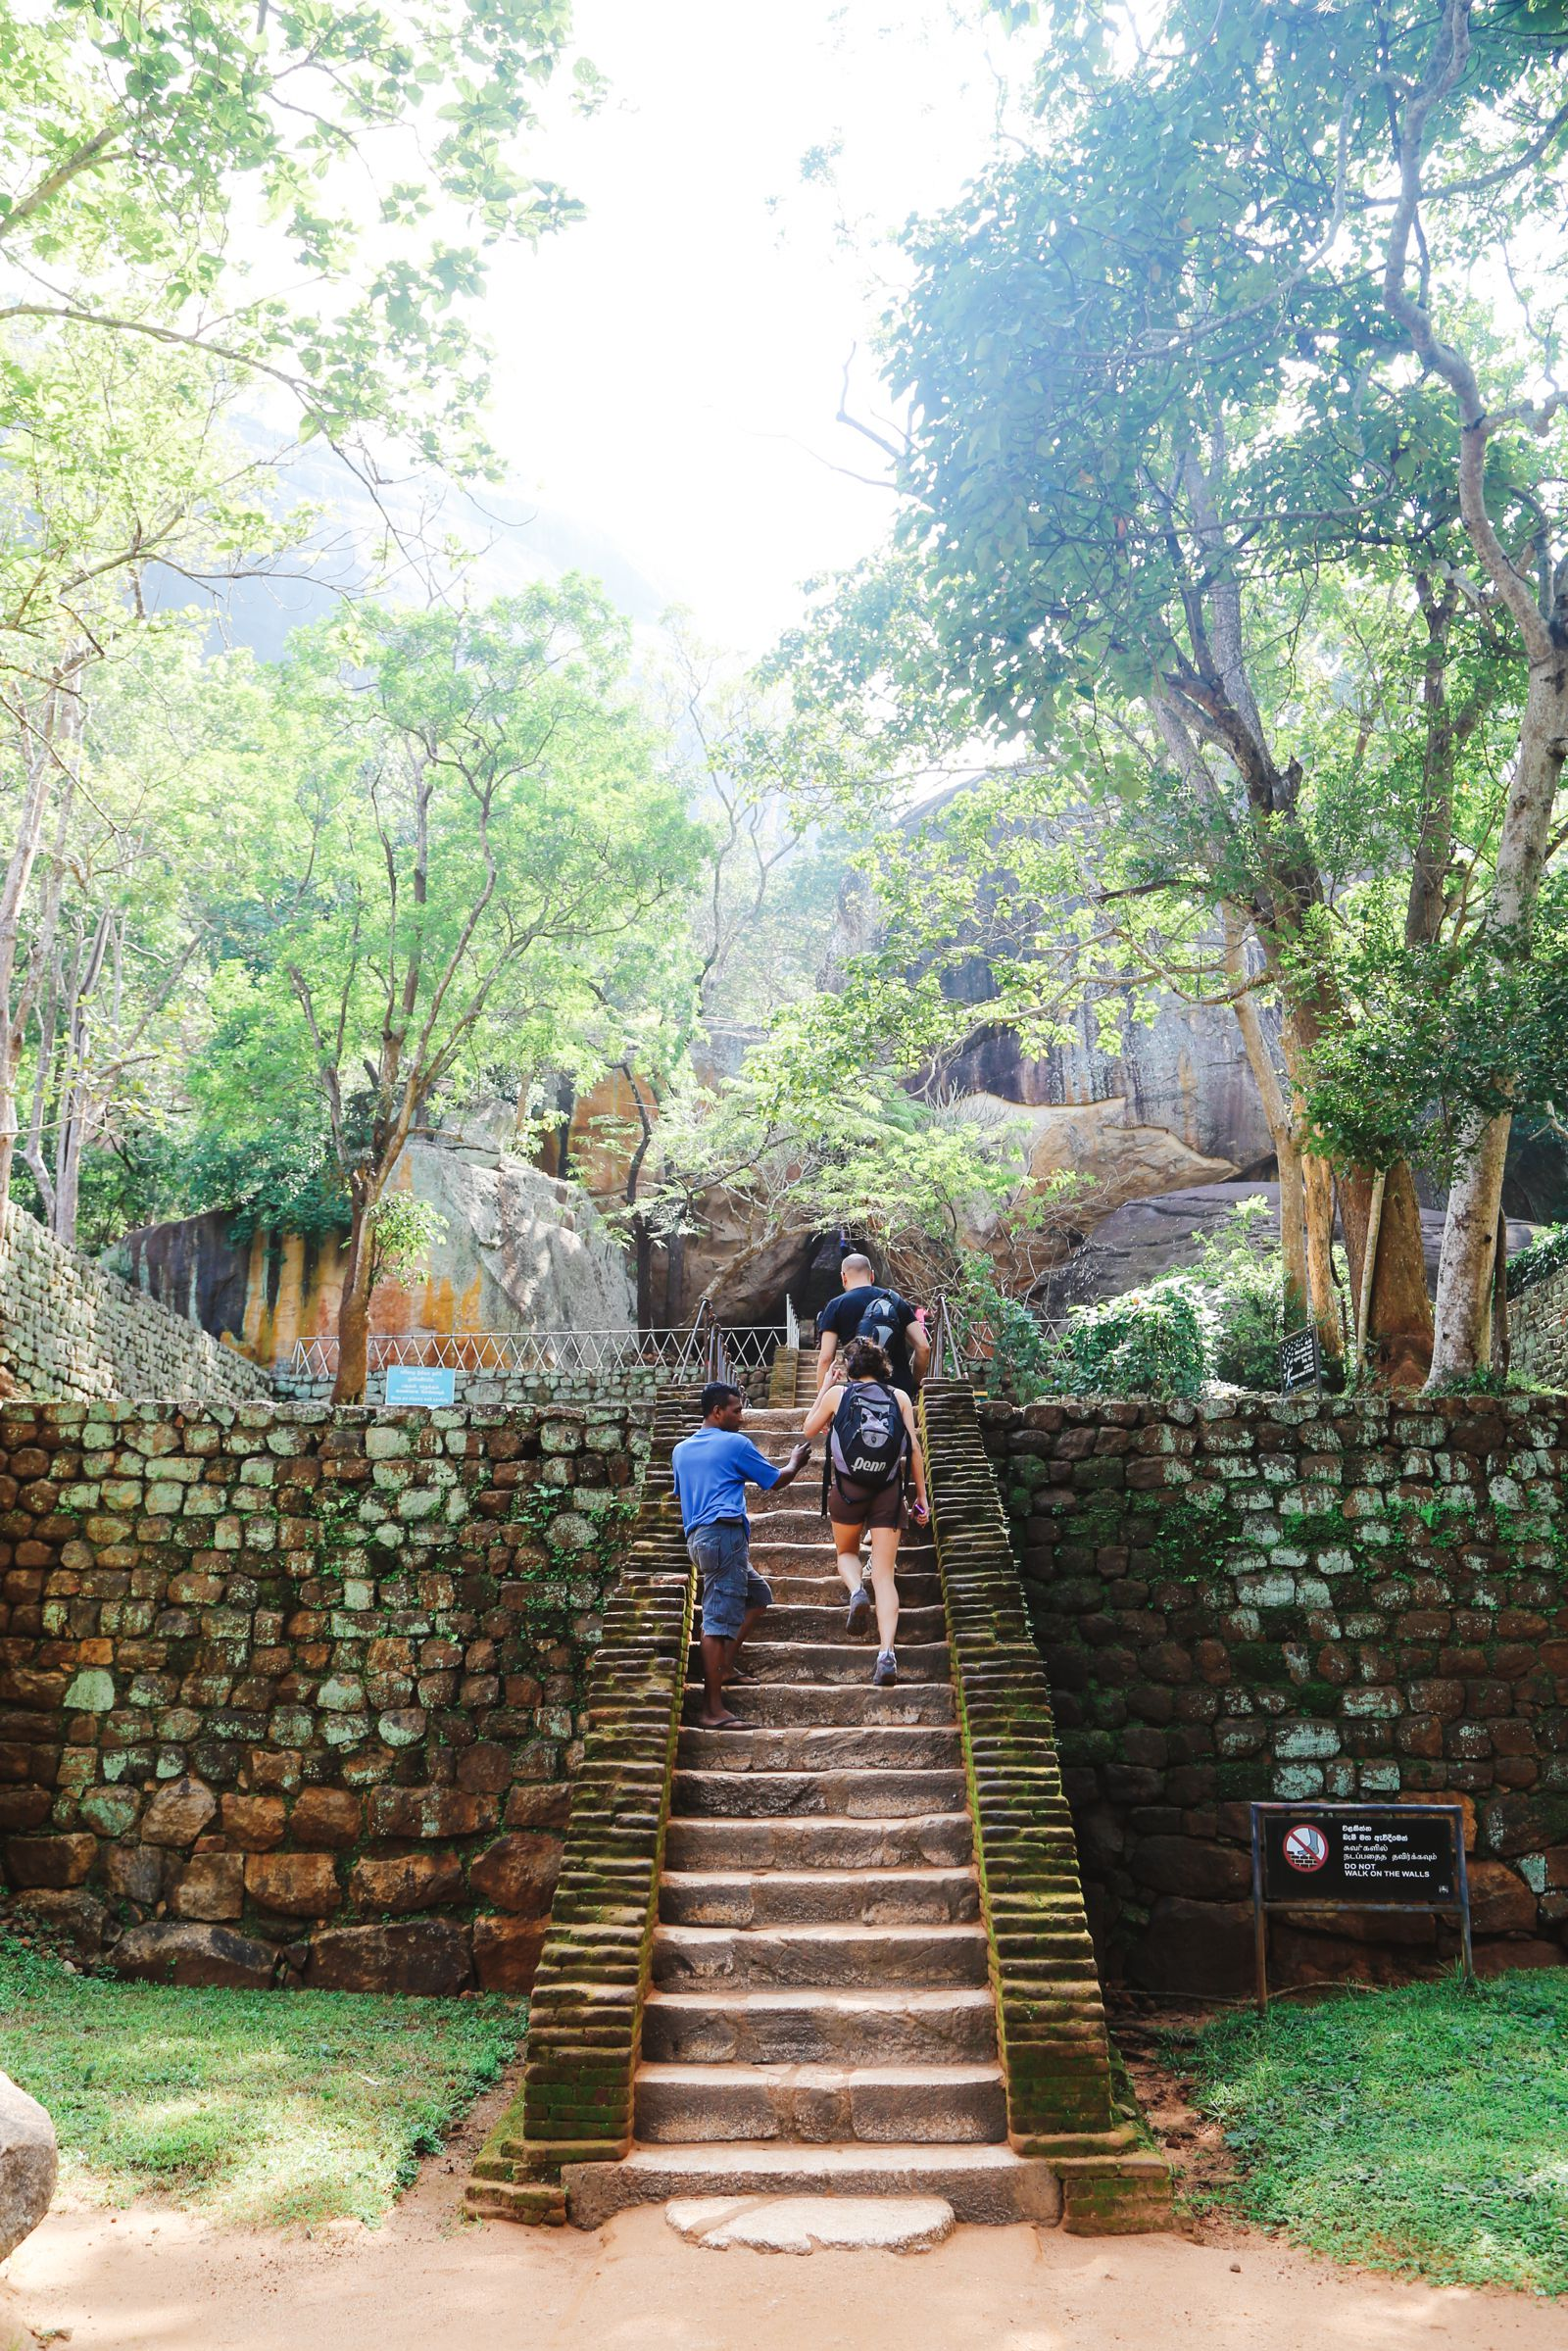 The Complete Guide To Climbing Sri Lanka's UNESCO World Heritage Site Of Sigiriya - Lion Rock (13)